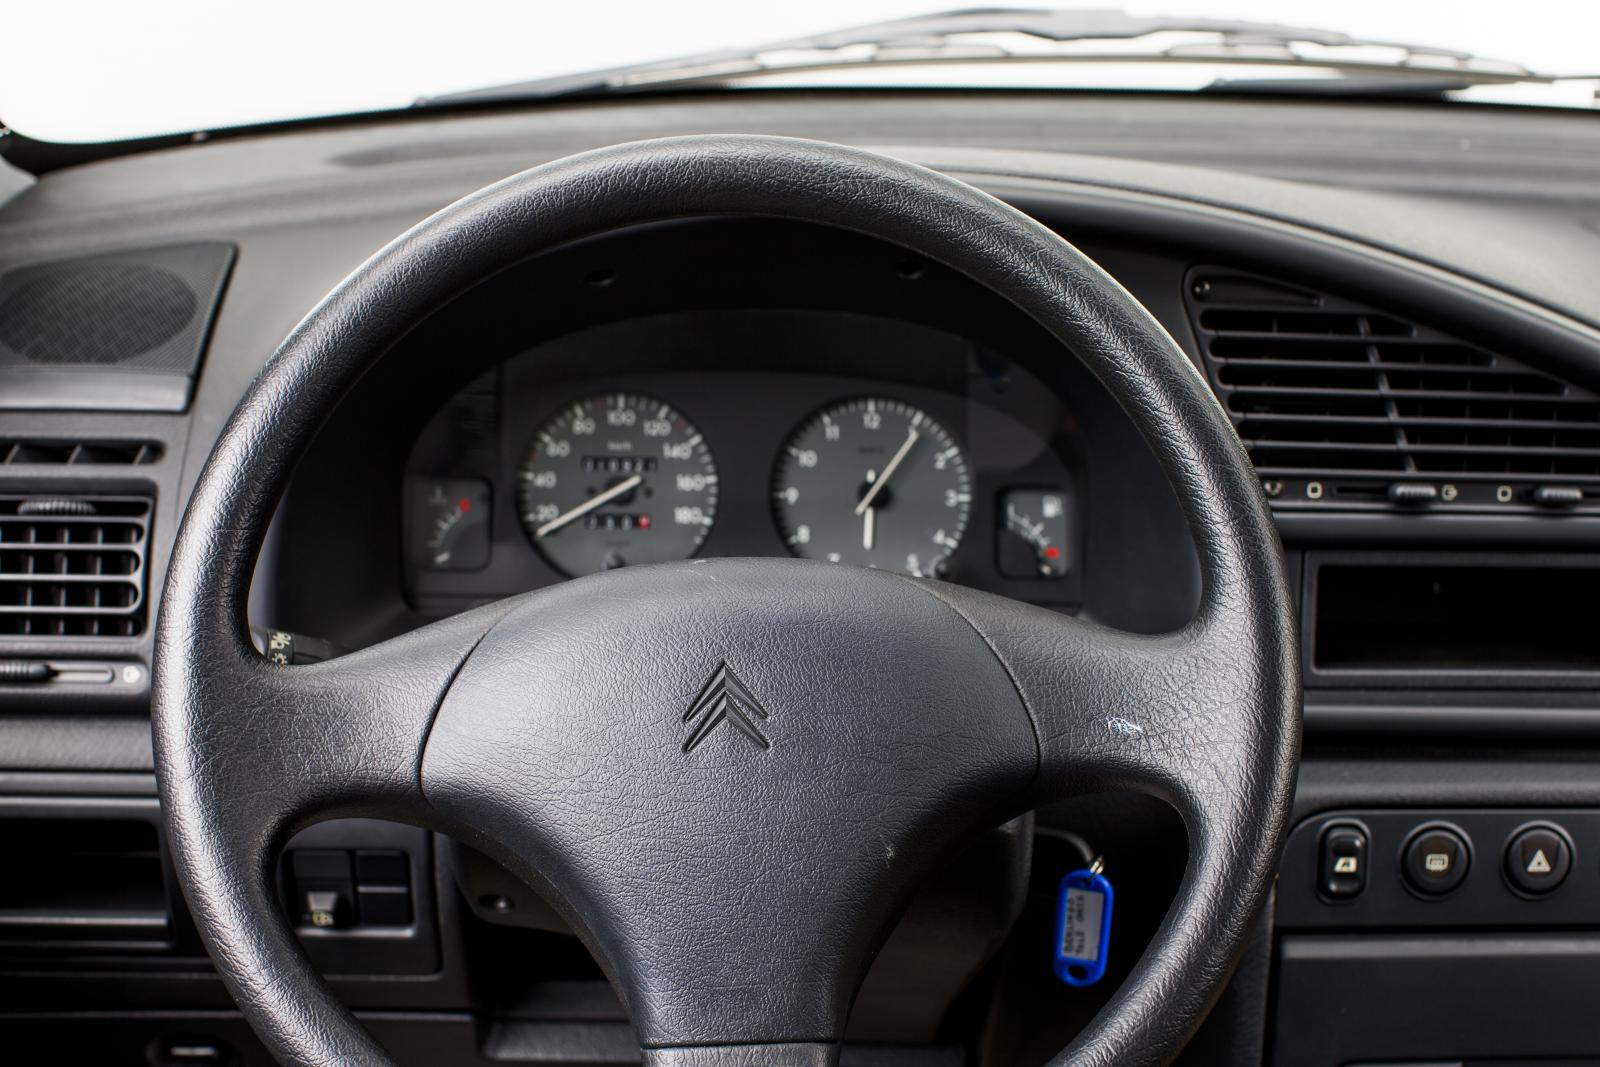 Berlingo 1 steering wheel